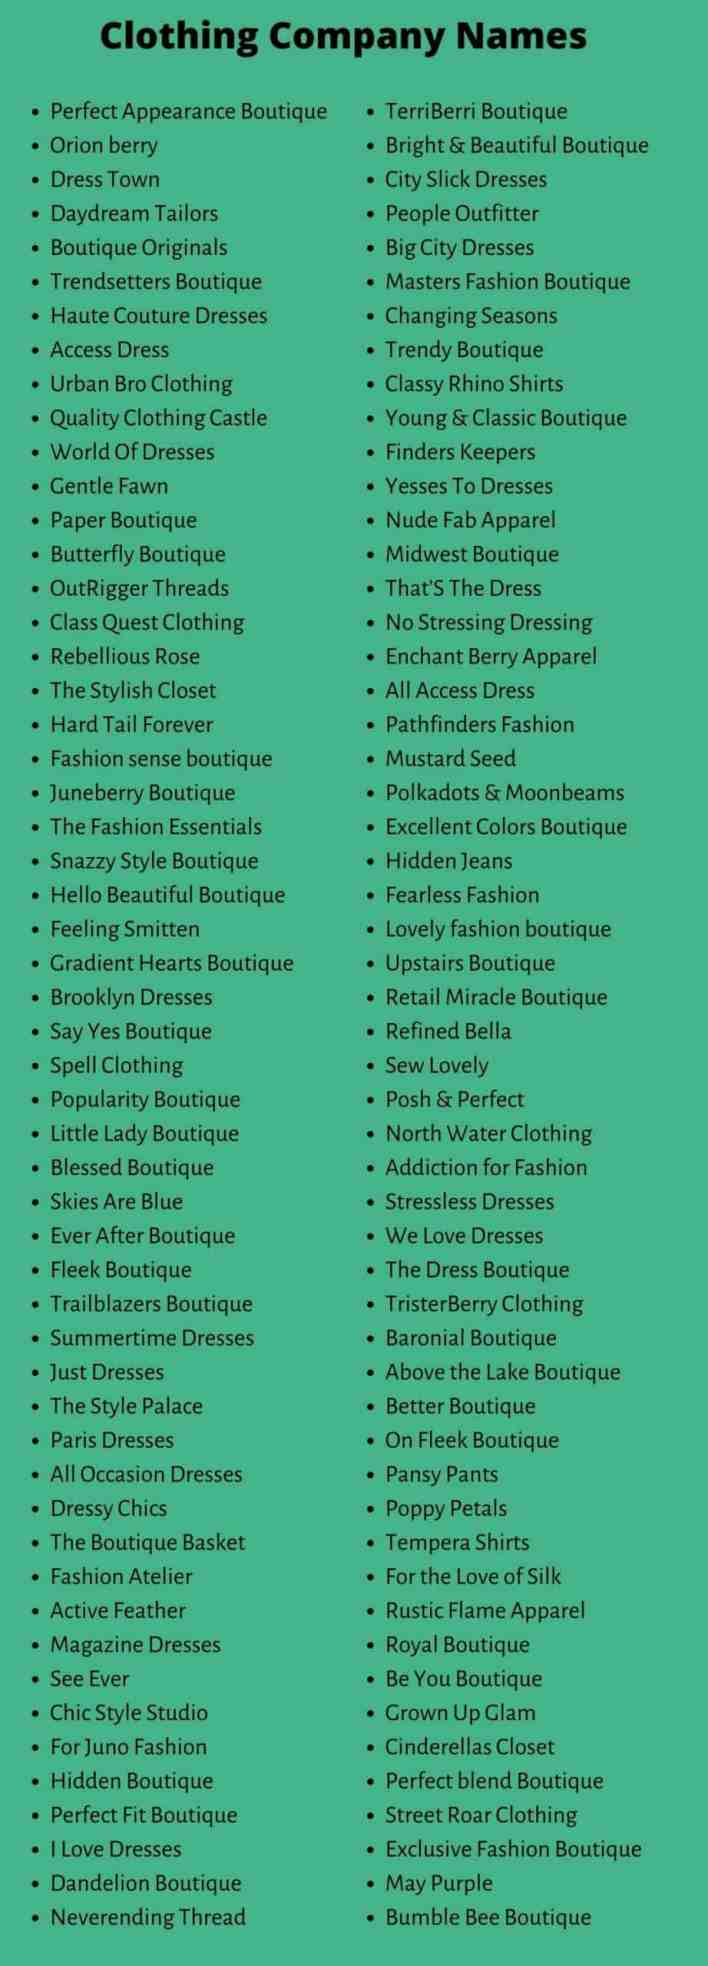 Clothing Company Names